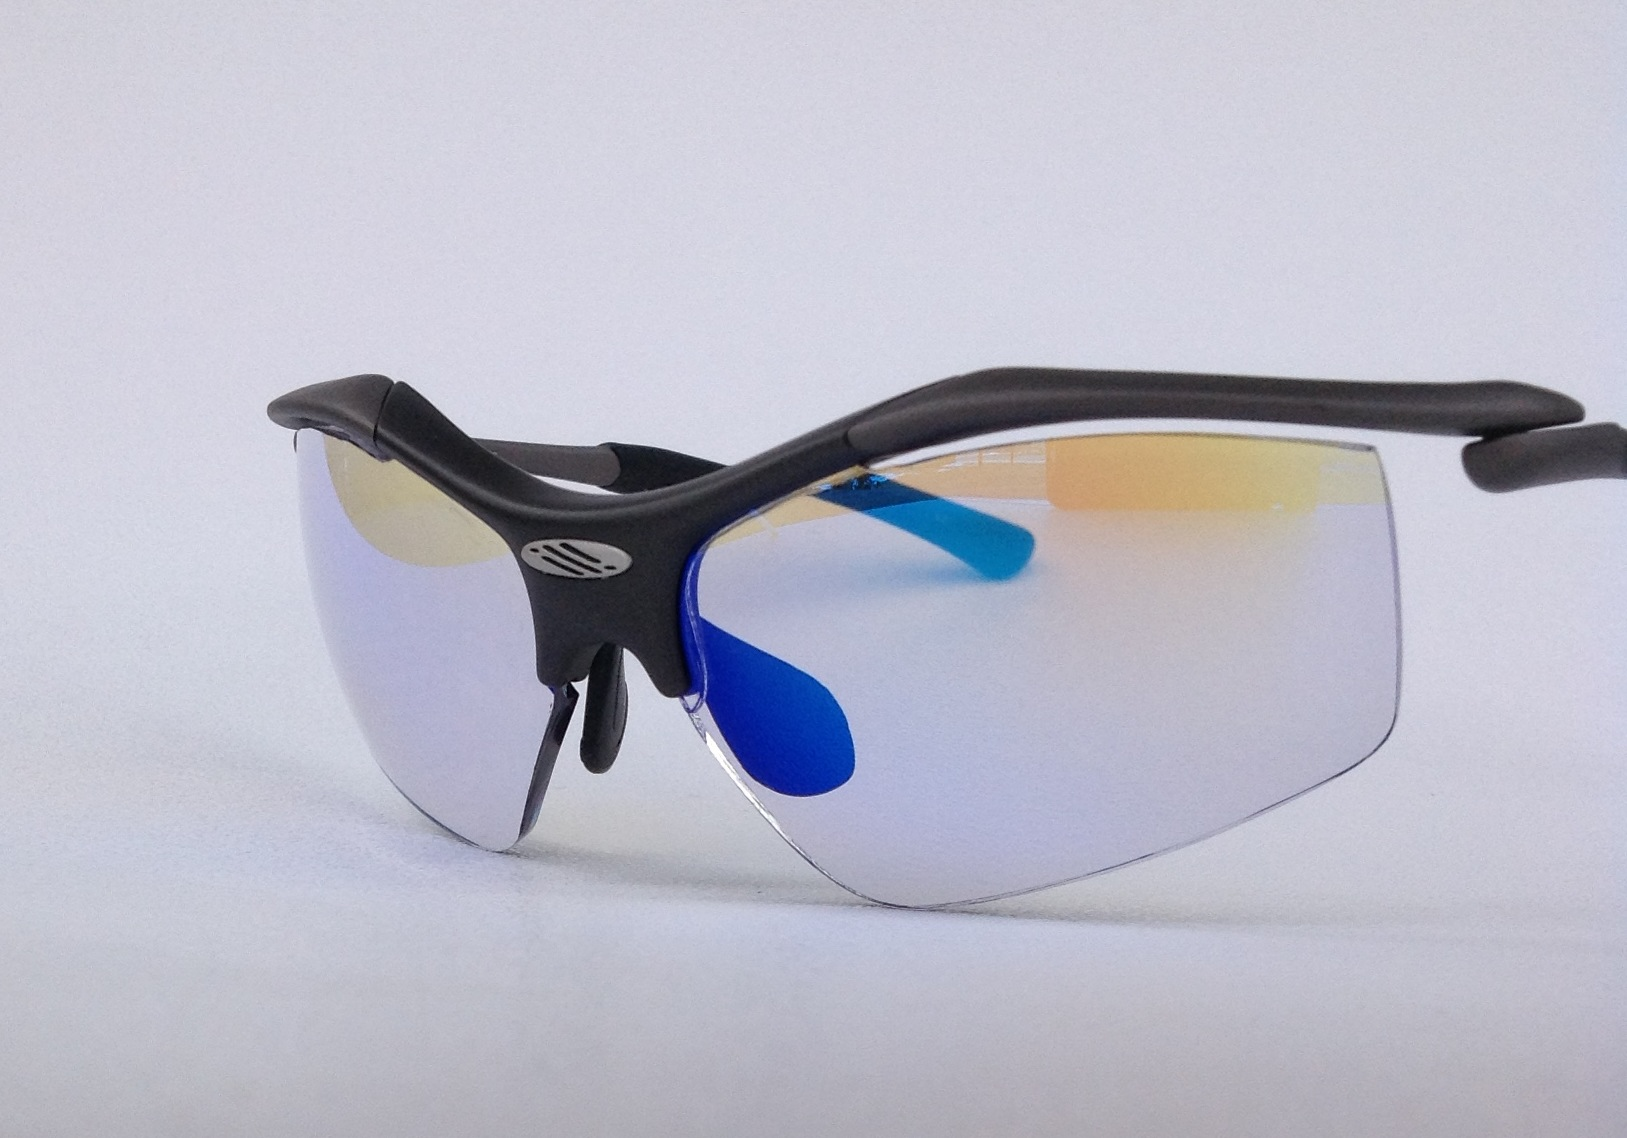 290d05f60b7 Photochromic Prescription Sports Glasses. Jun20. Elderly friends. Oakley  Prescription Lenses Transitions « Heritage Malta